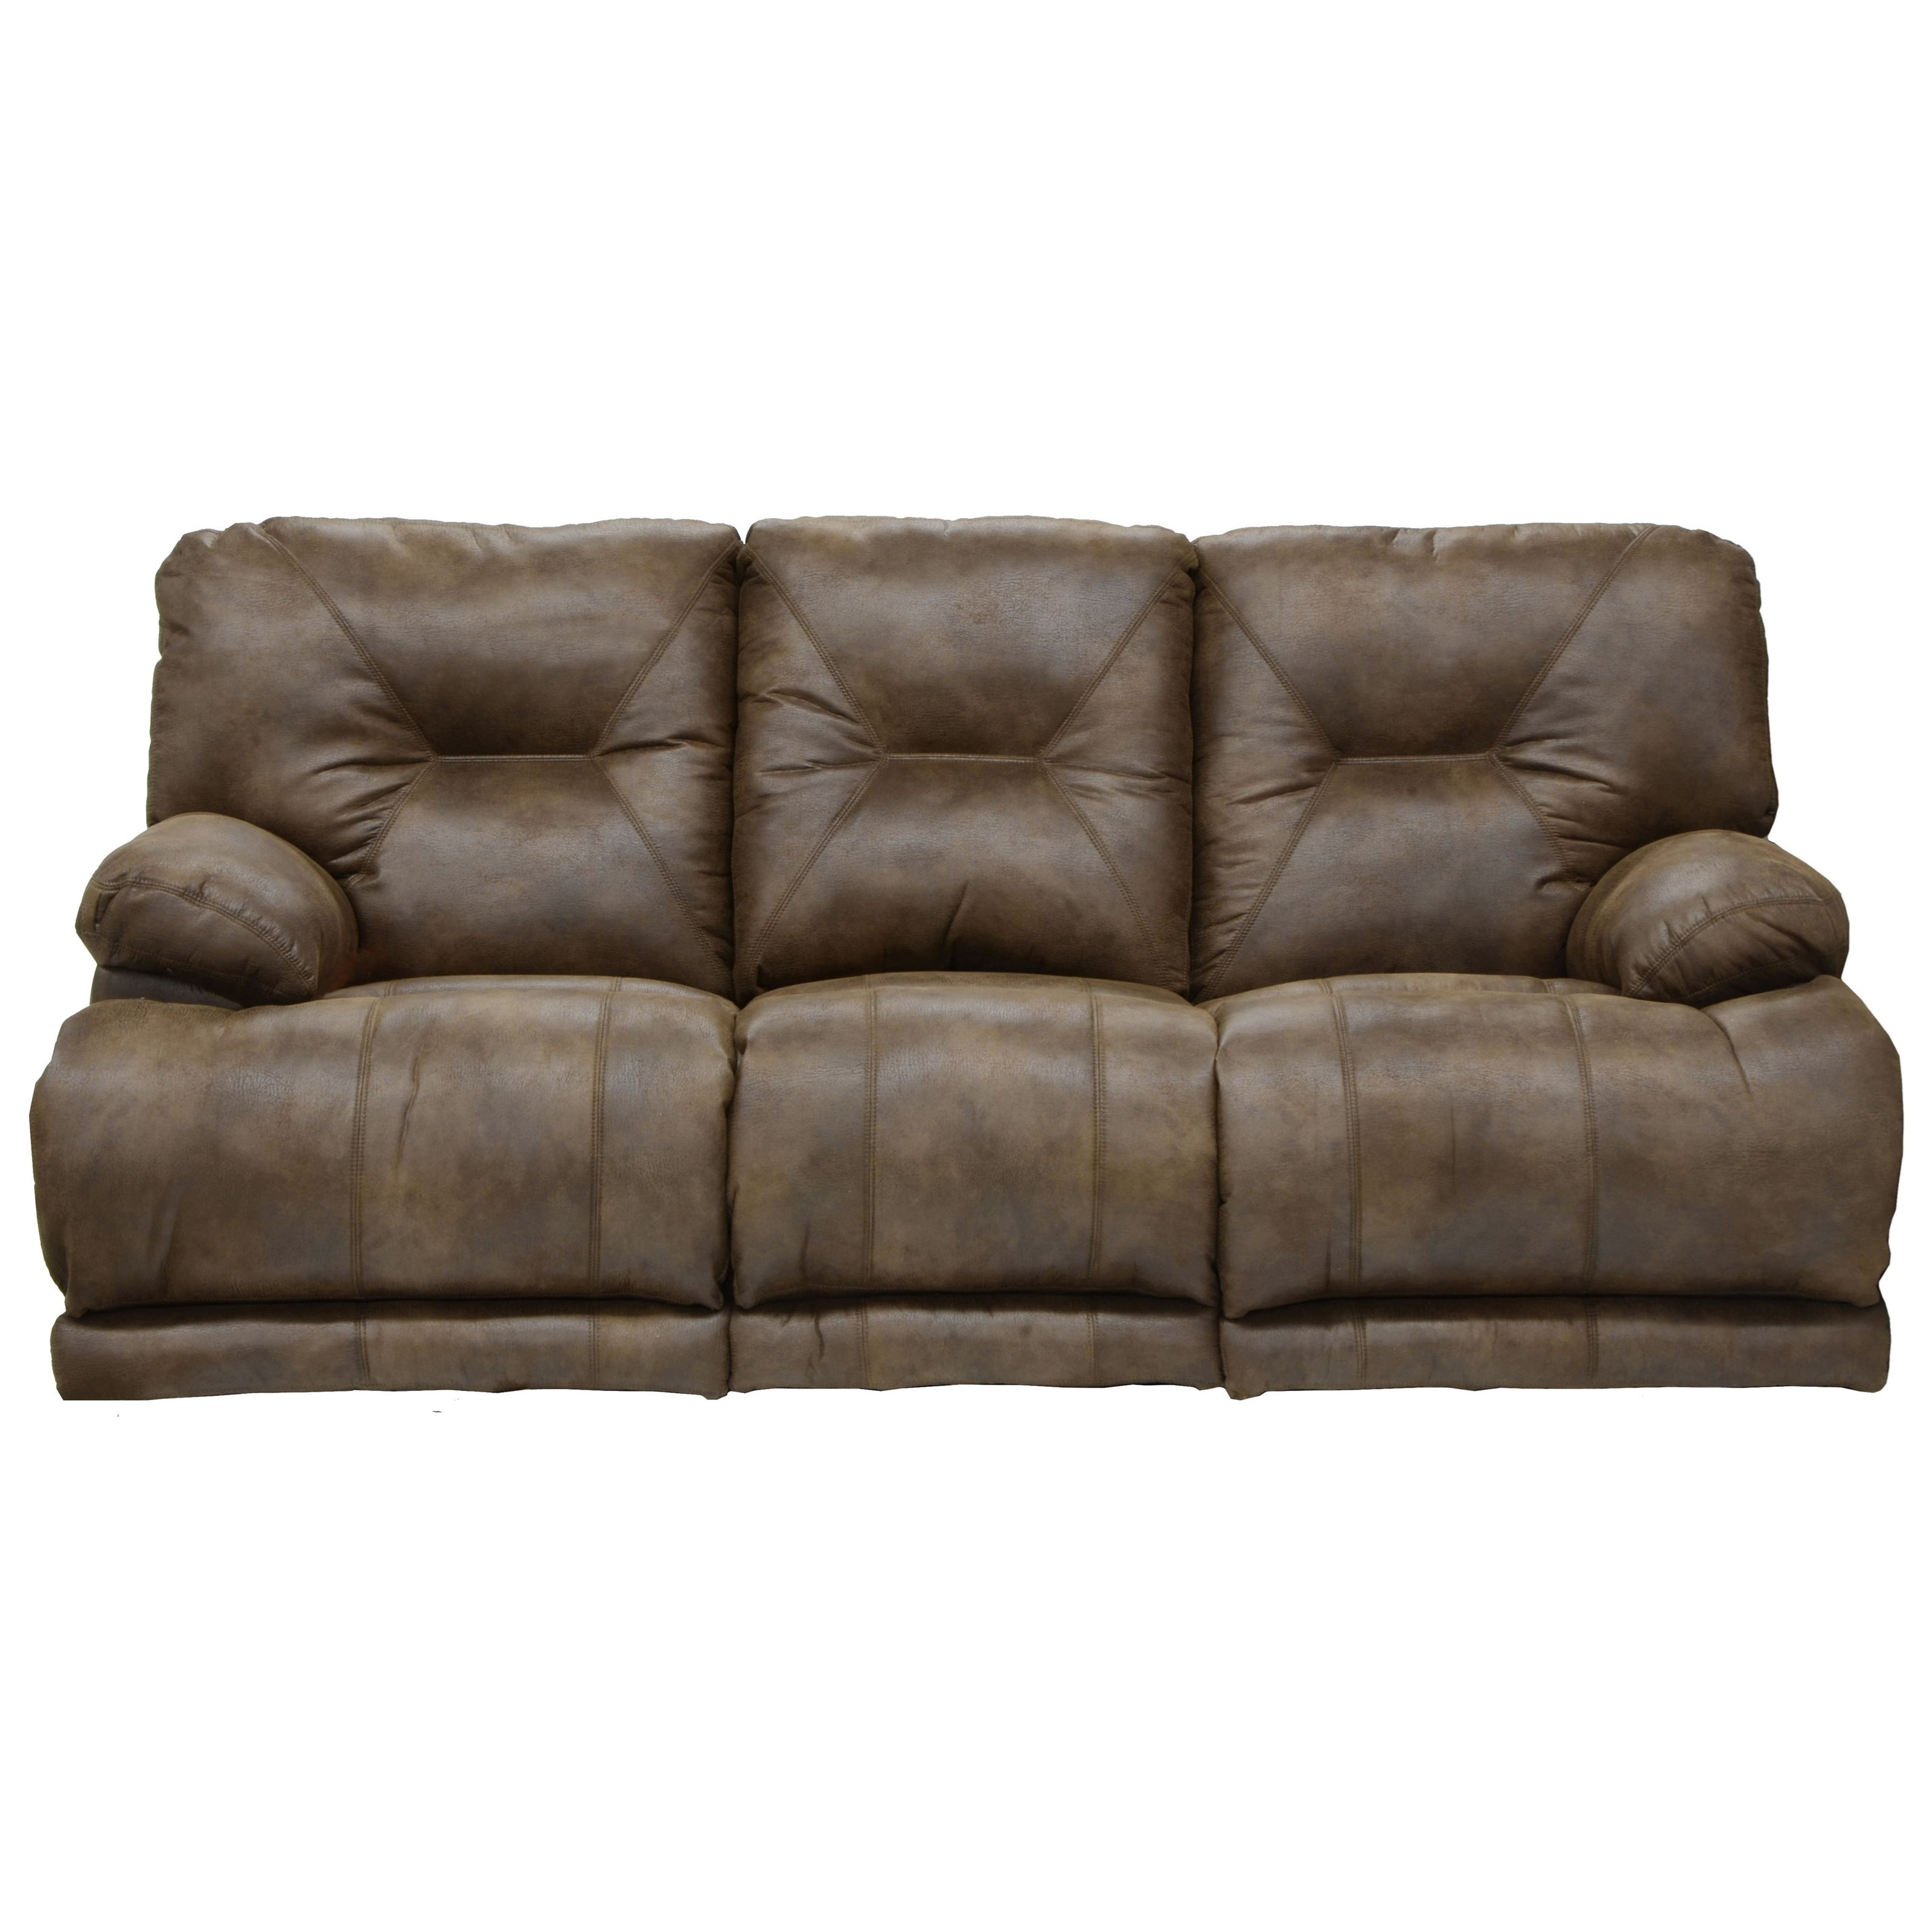 "Catnapper Voyager ""Lay Flat"" Reclining Sofa - Item Number: 4381-1228-29-3028-29"